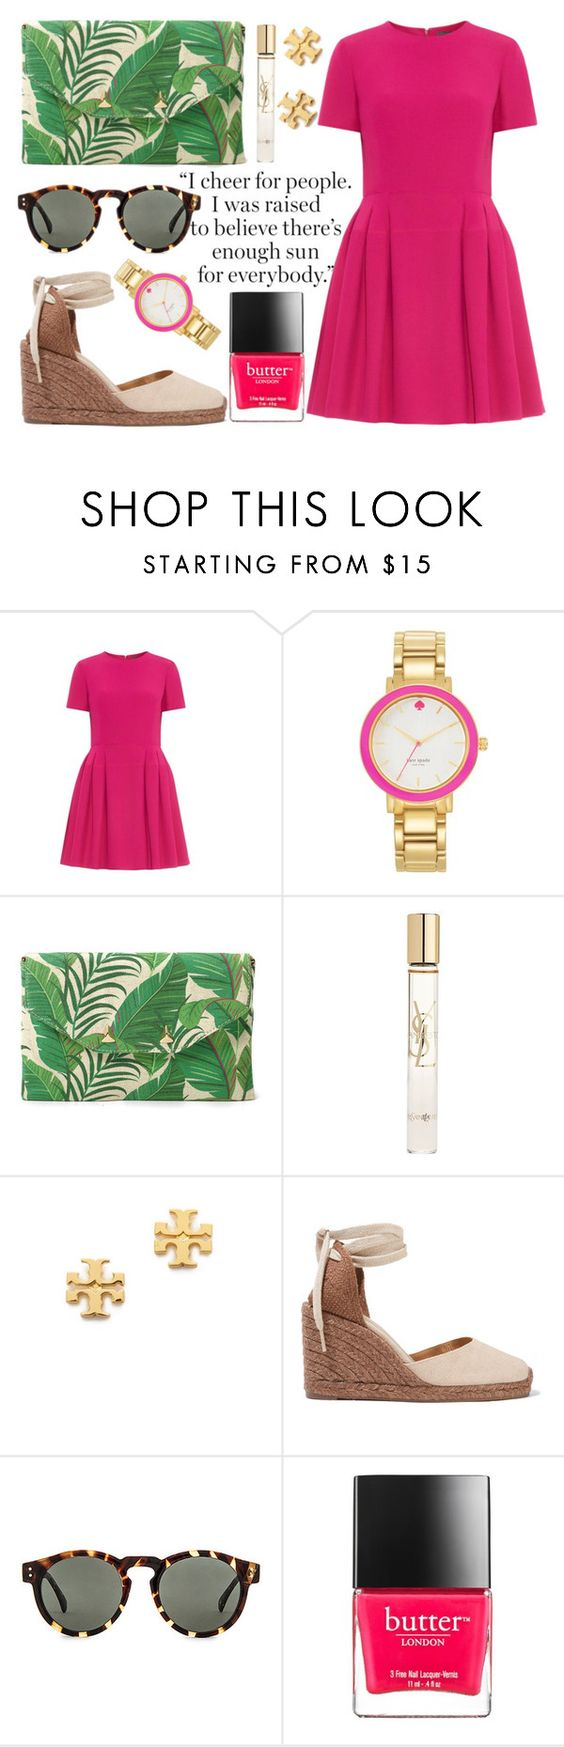 """Thank You For 500"" by poshandy ❤ liked on Polyvore featuring Alexander McQueen, Kate Spade, Stella & Dot, Yves Saint Laurent, Tory Burch, Castañer, Komono, Butter London, Summer and preppy"